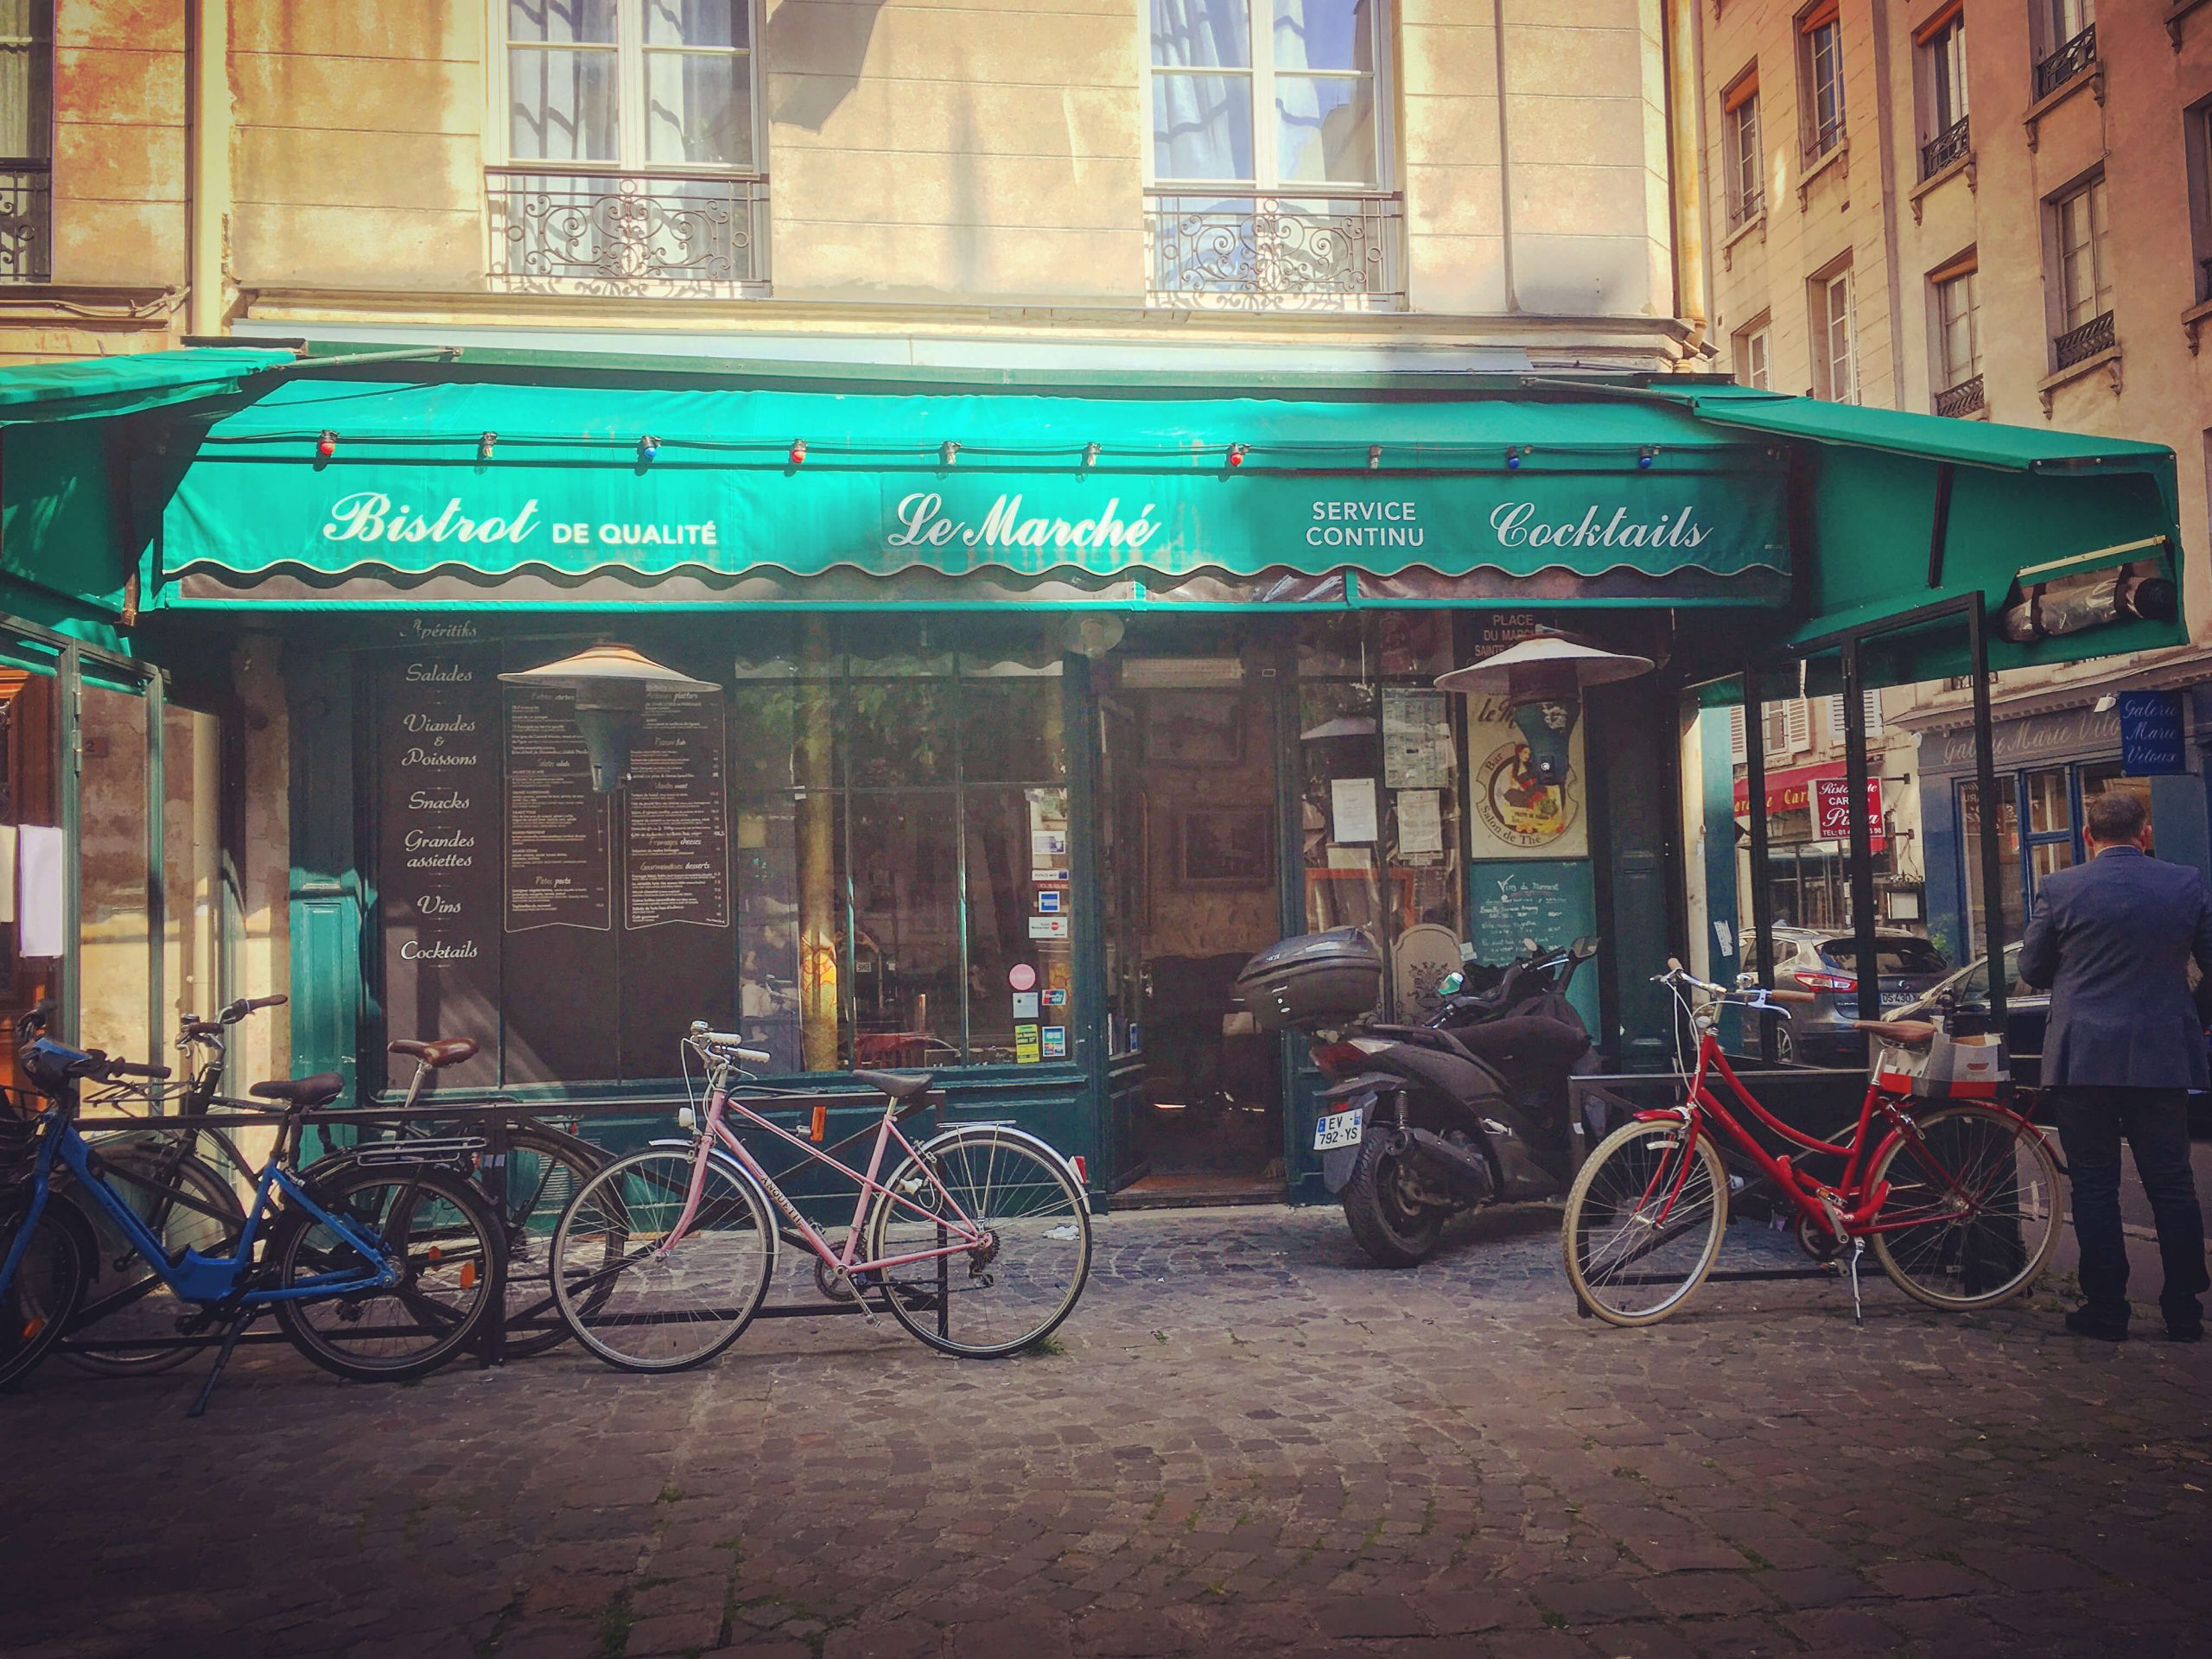 Green awning for bistro Le Marche with bicycles parked outside